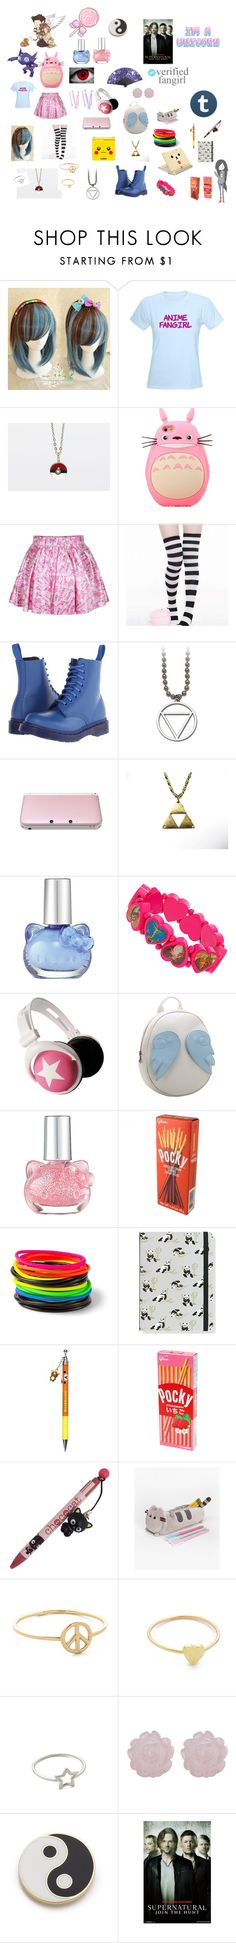 """""""fun#2"""" by savbrauda ❤ liked on Polyvore featuring Dr. Martens, Nintendo, Hello Kitty, BOBBY, Chicnova Fashion, claire's, sOUP, Jennifer Meyer Jewelry and Georgia Perry"""